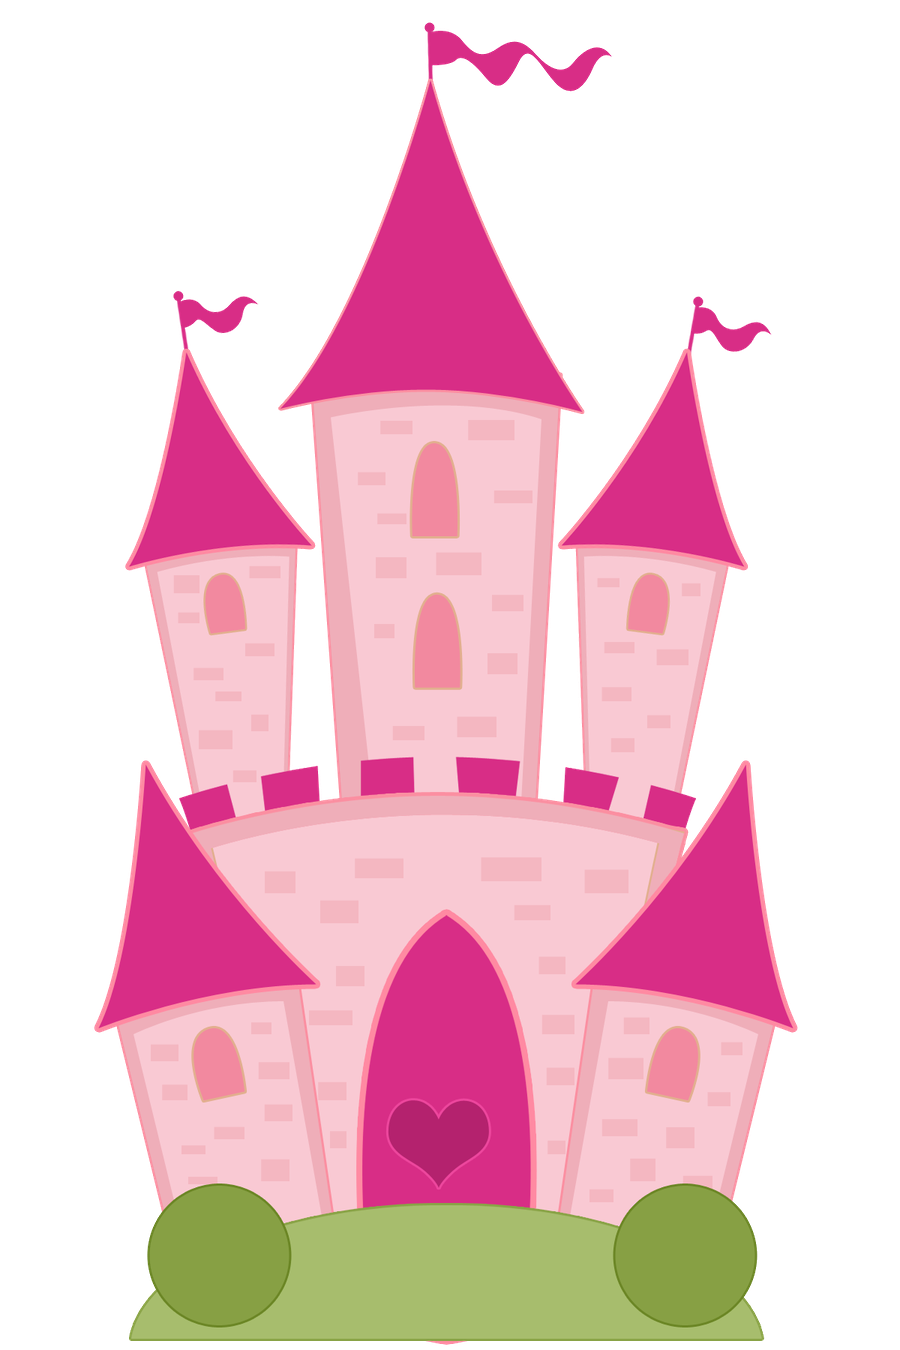 Princesas e pr ncipes. Trail clipart path windy